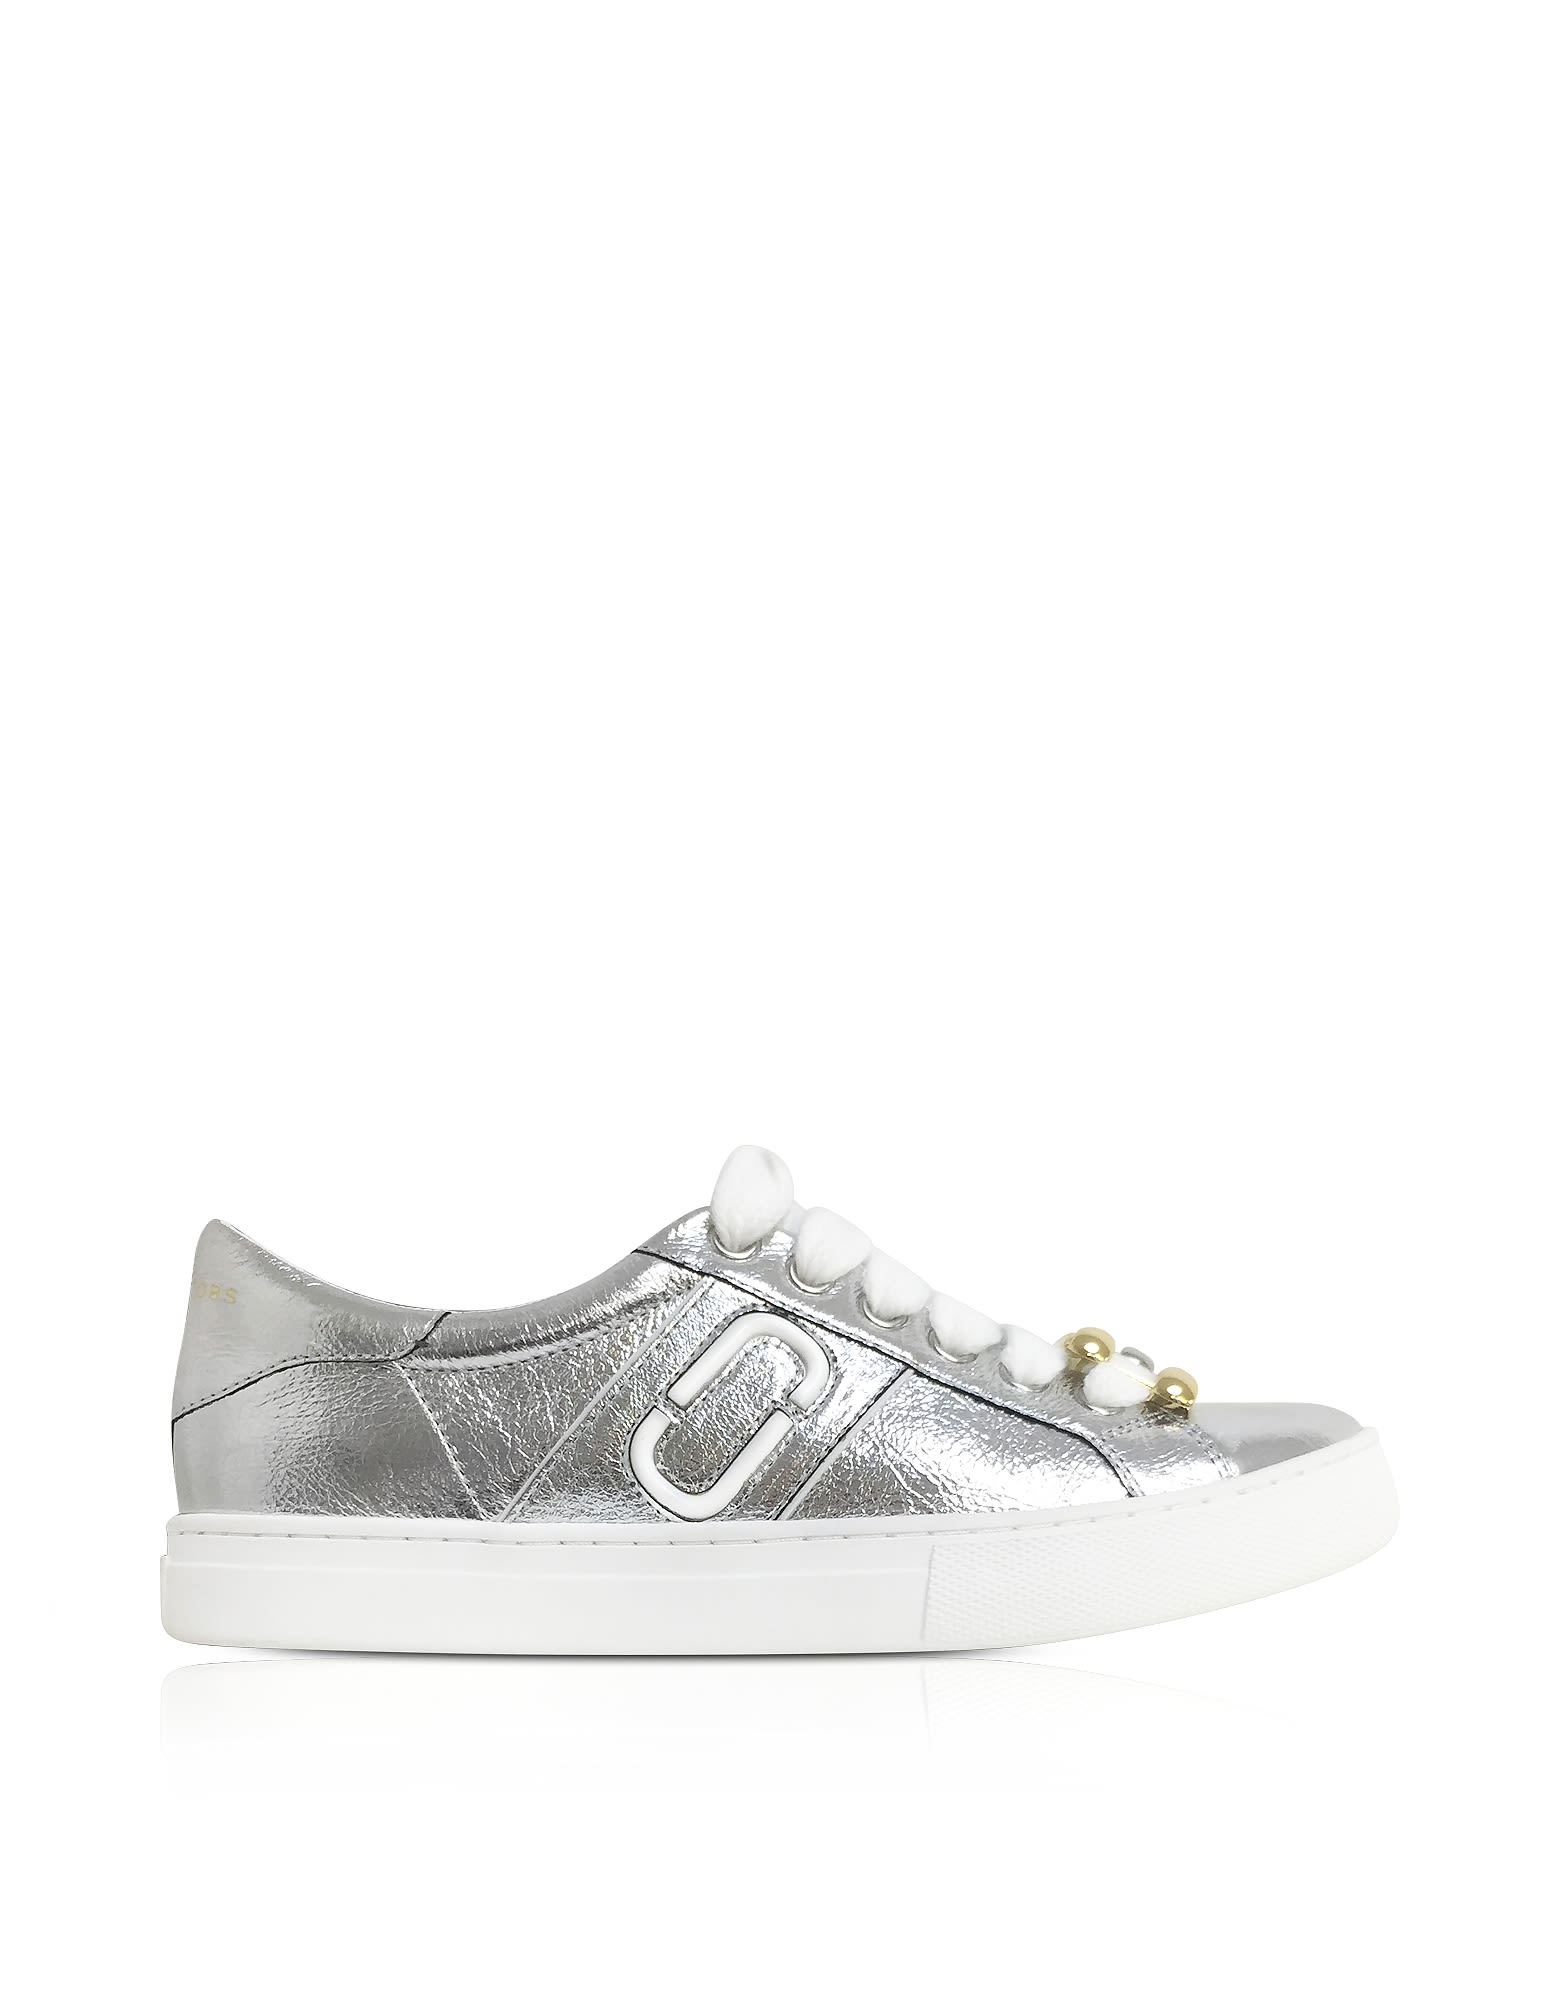 The Empire metallic-leather low-top sneakers Marc Jacobs jkEtjFa